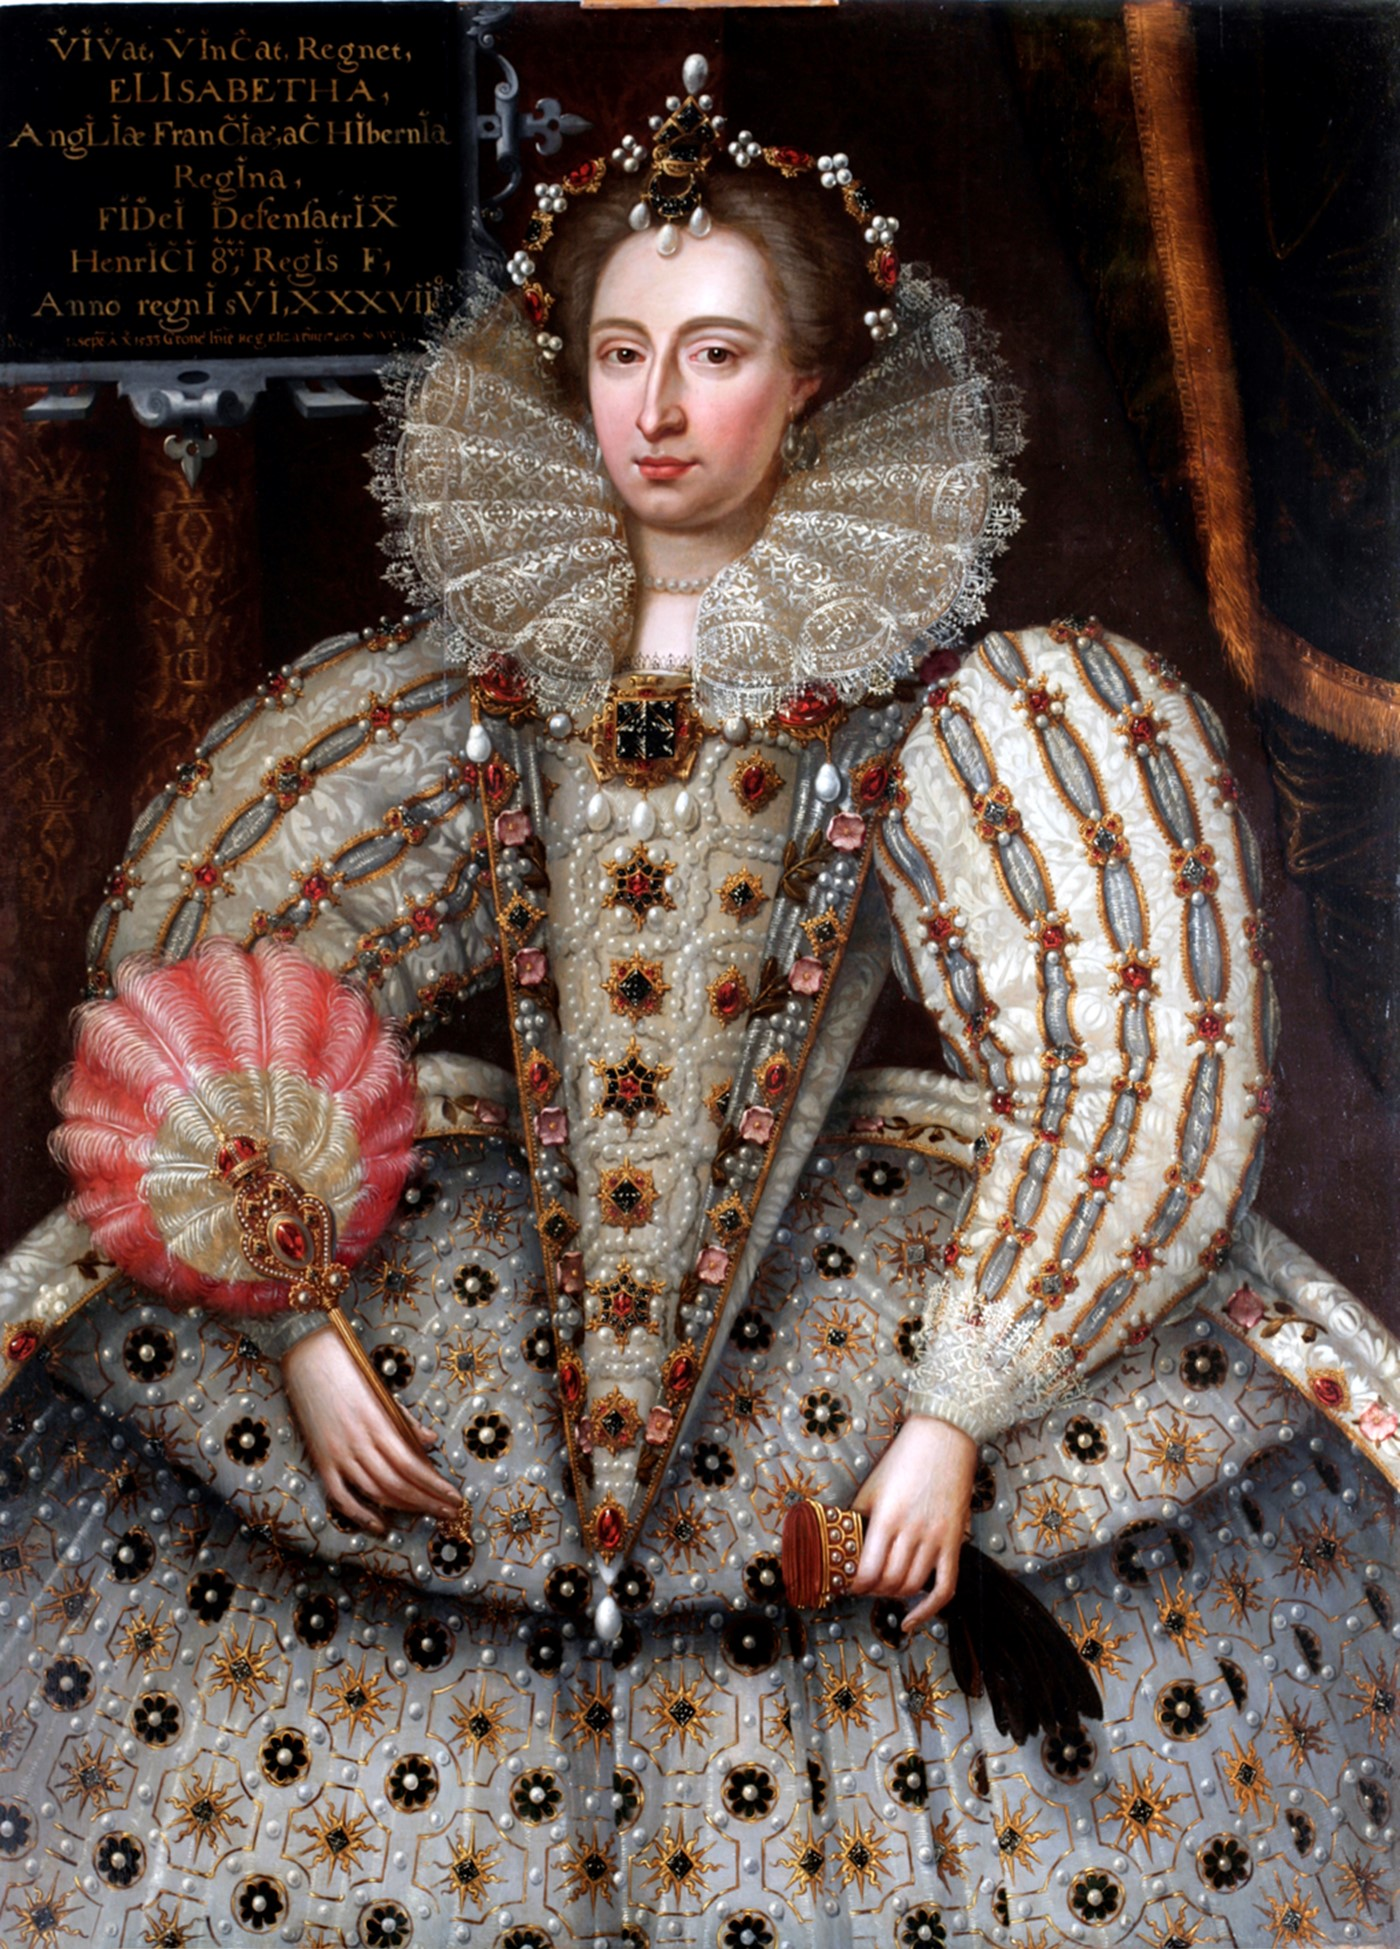 Elizabeth I portrait conserved (HK) 300 Westminster Abbey copyright.jpg